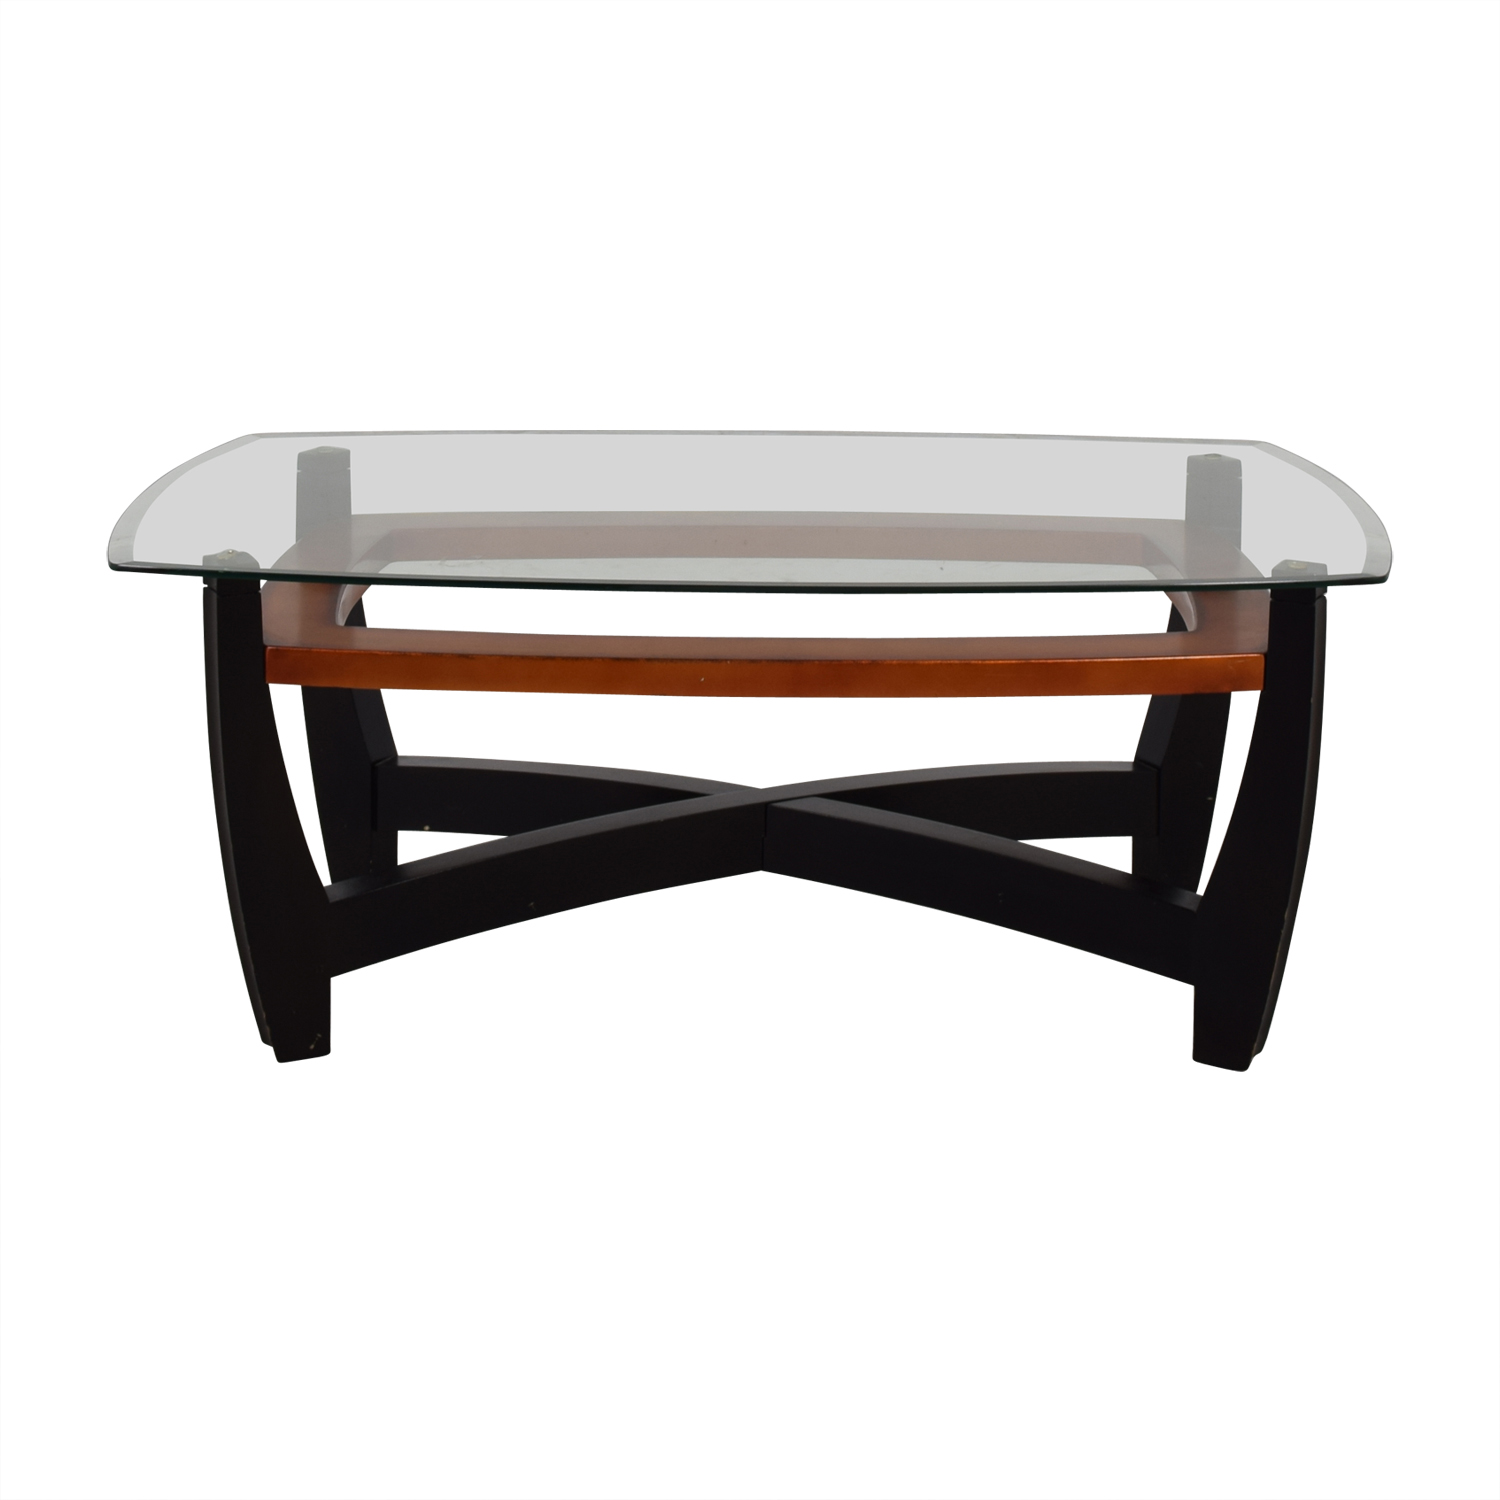 82 Off Raymour Flanigan Black And Brown Gl Top Coffee Table Tables